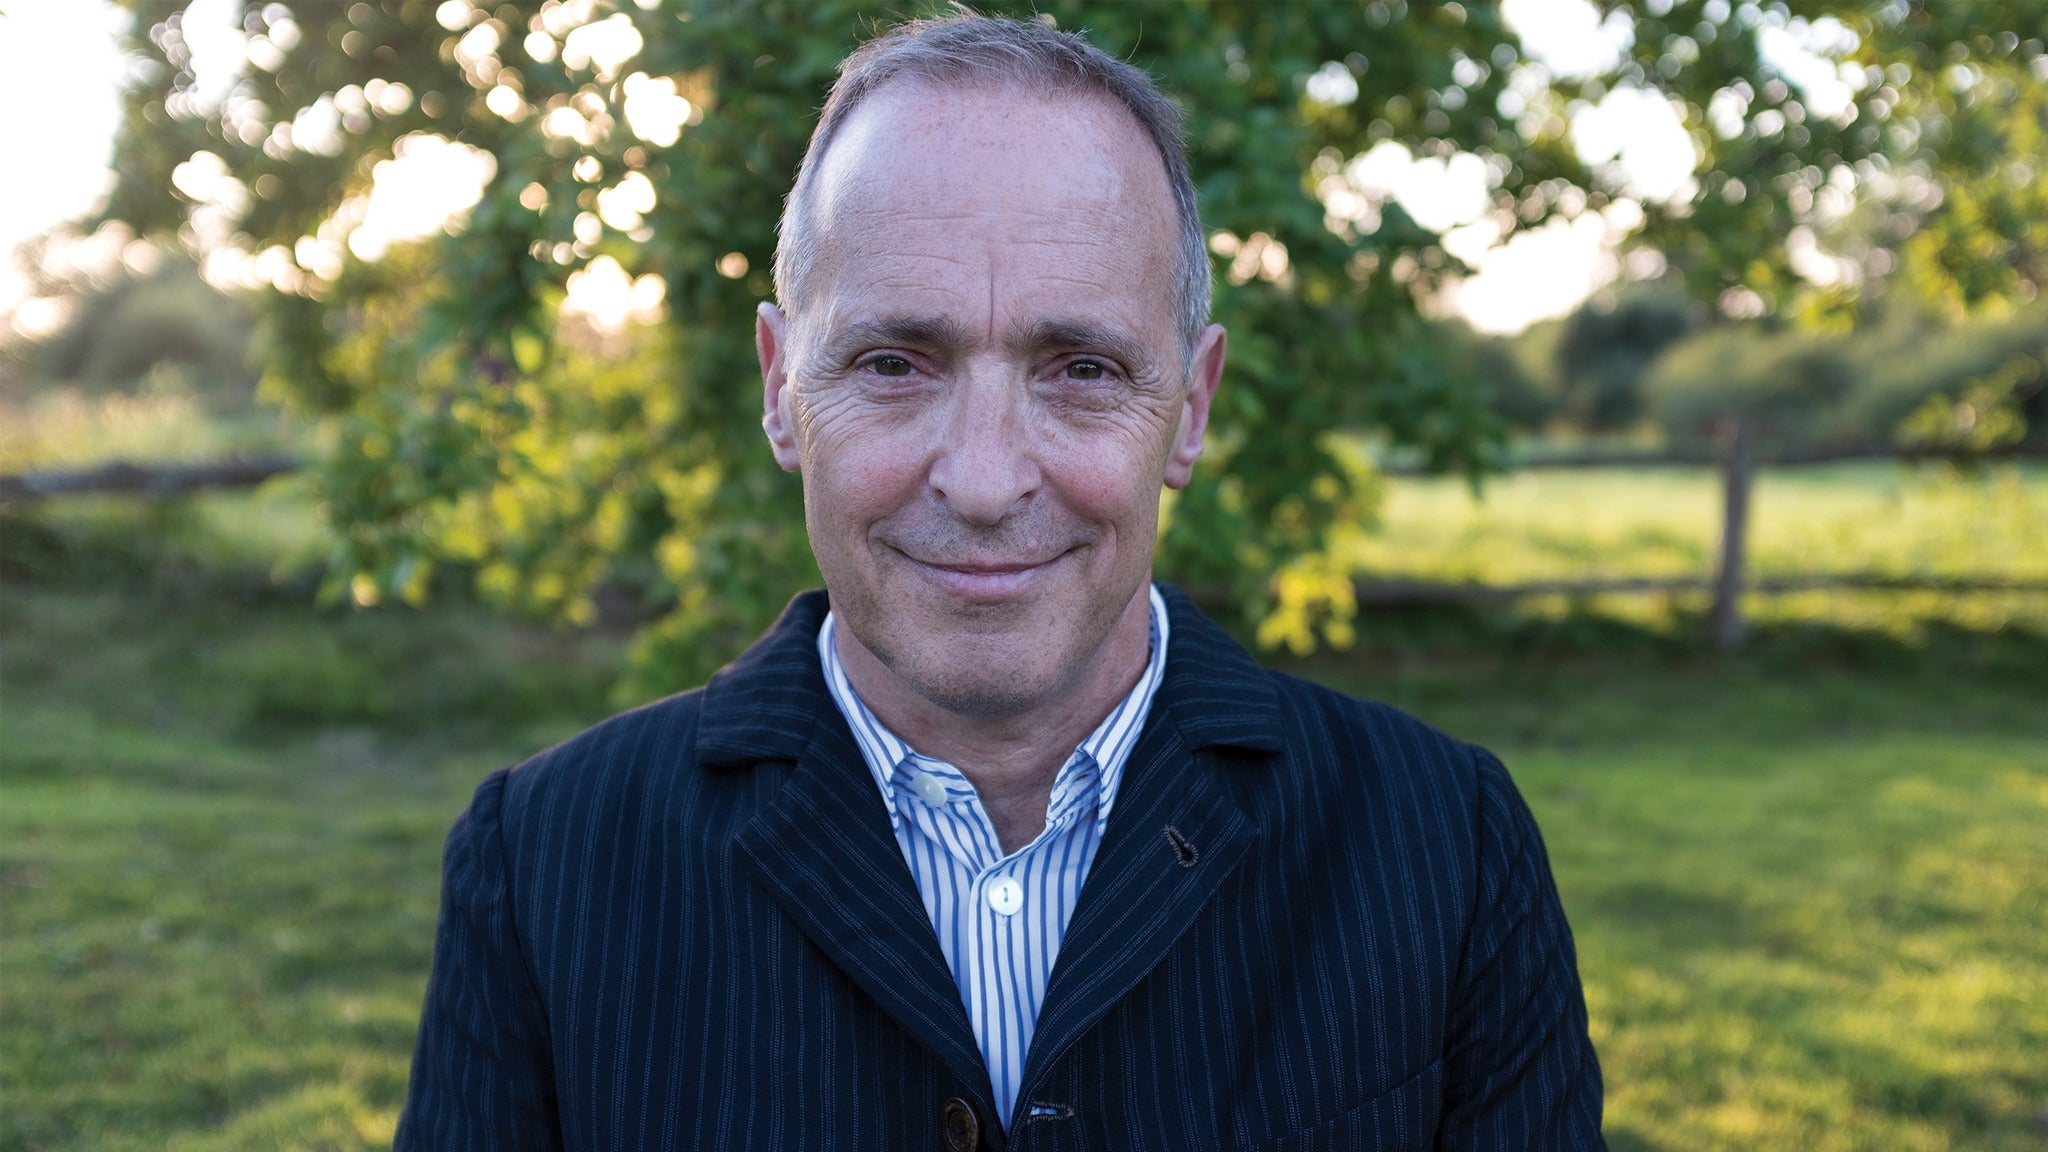 An Evening With David Sedaris at Genesee Theatre